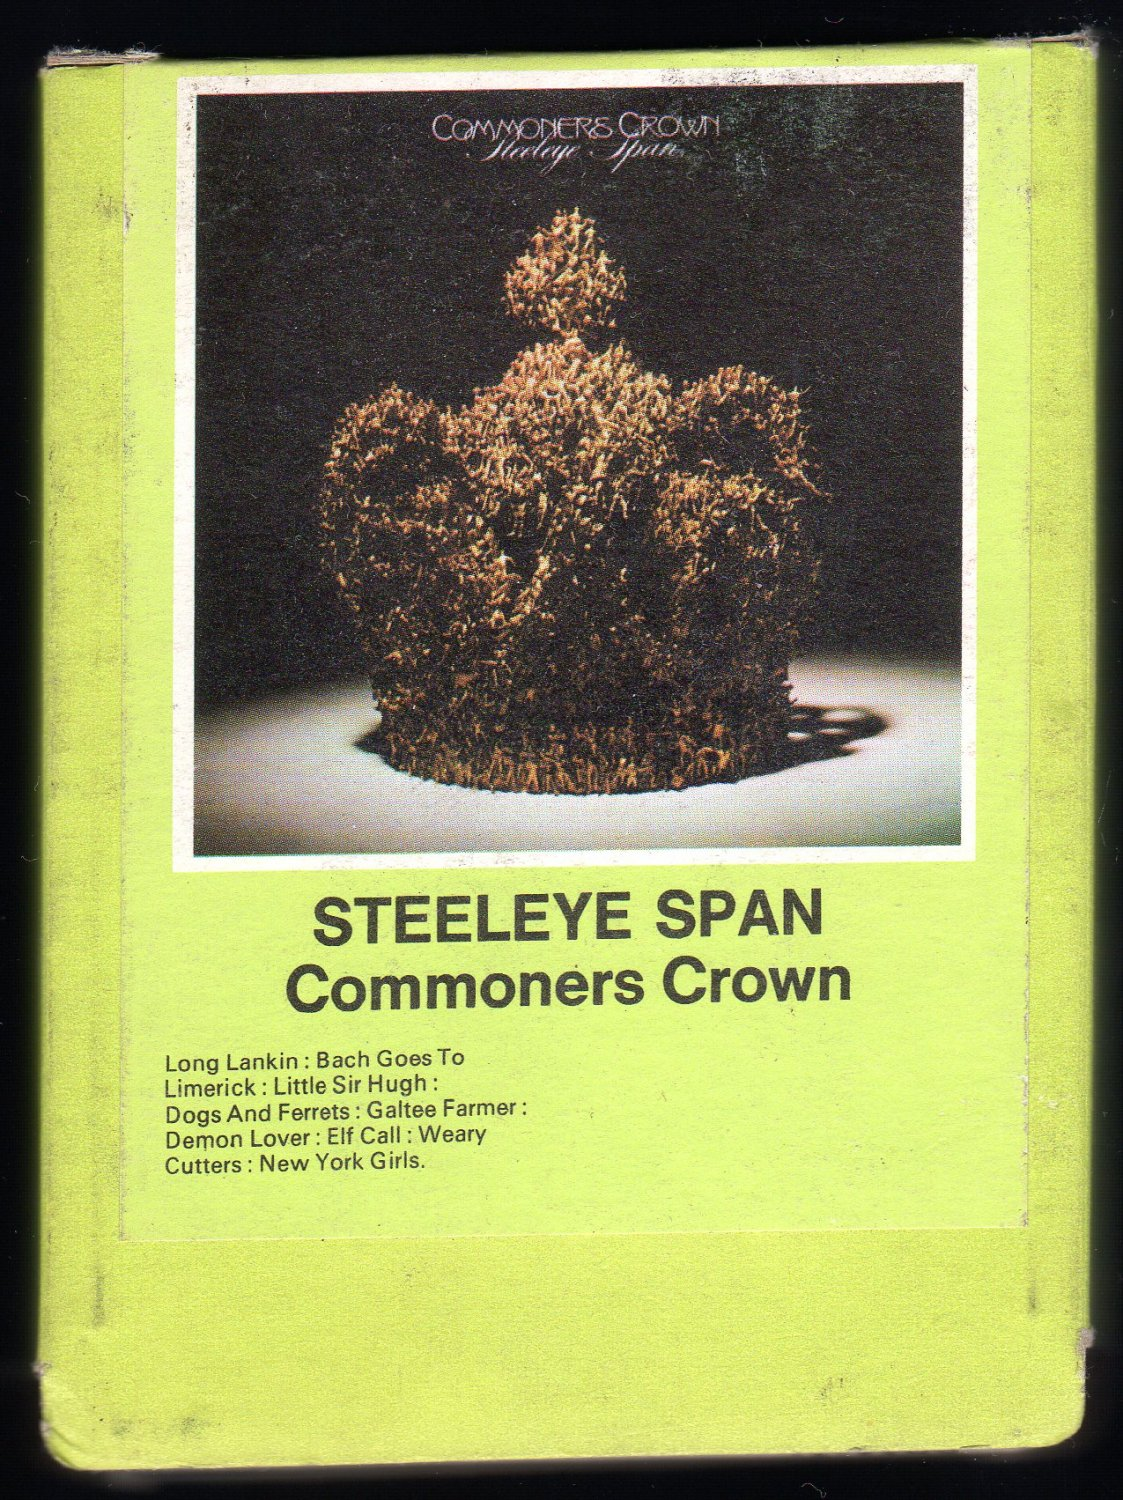 Steeleye Span - Commoner's Crown 1975 CHRYSALIS UK A29B 8-TRACK TAPE